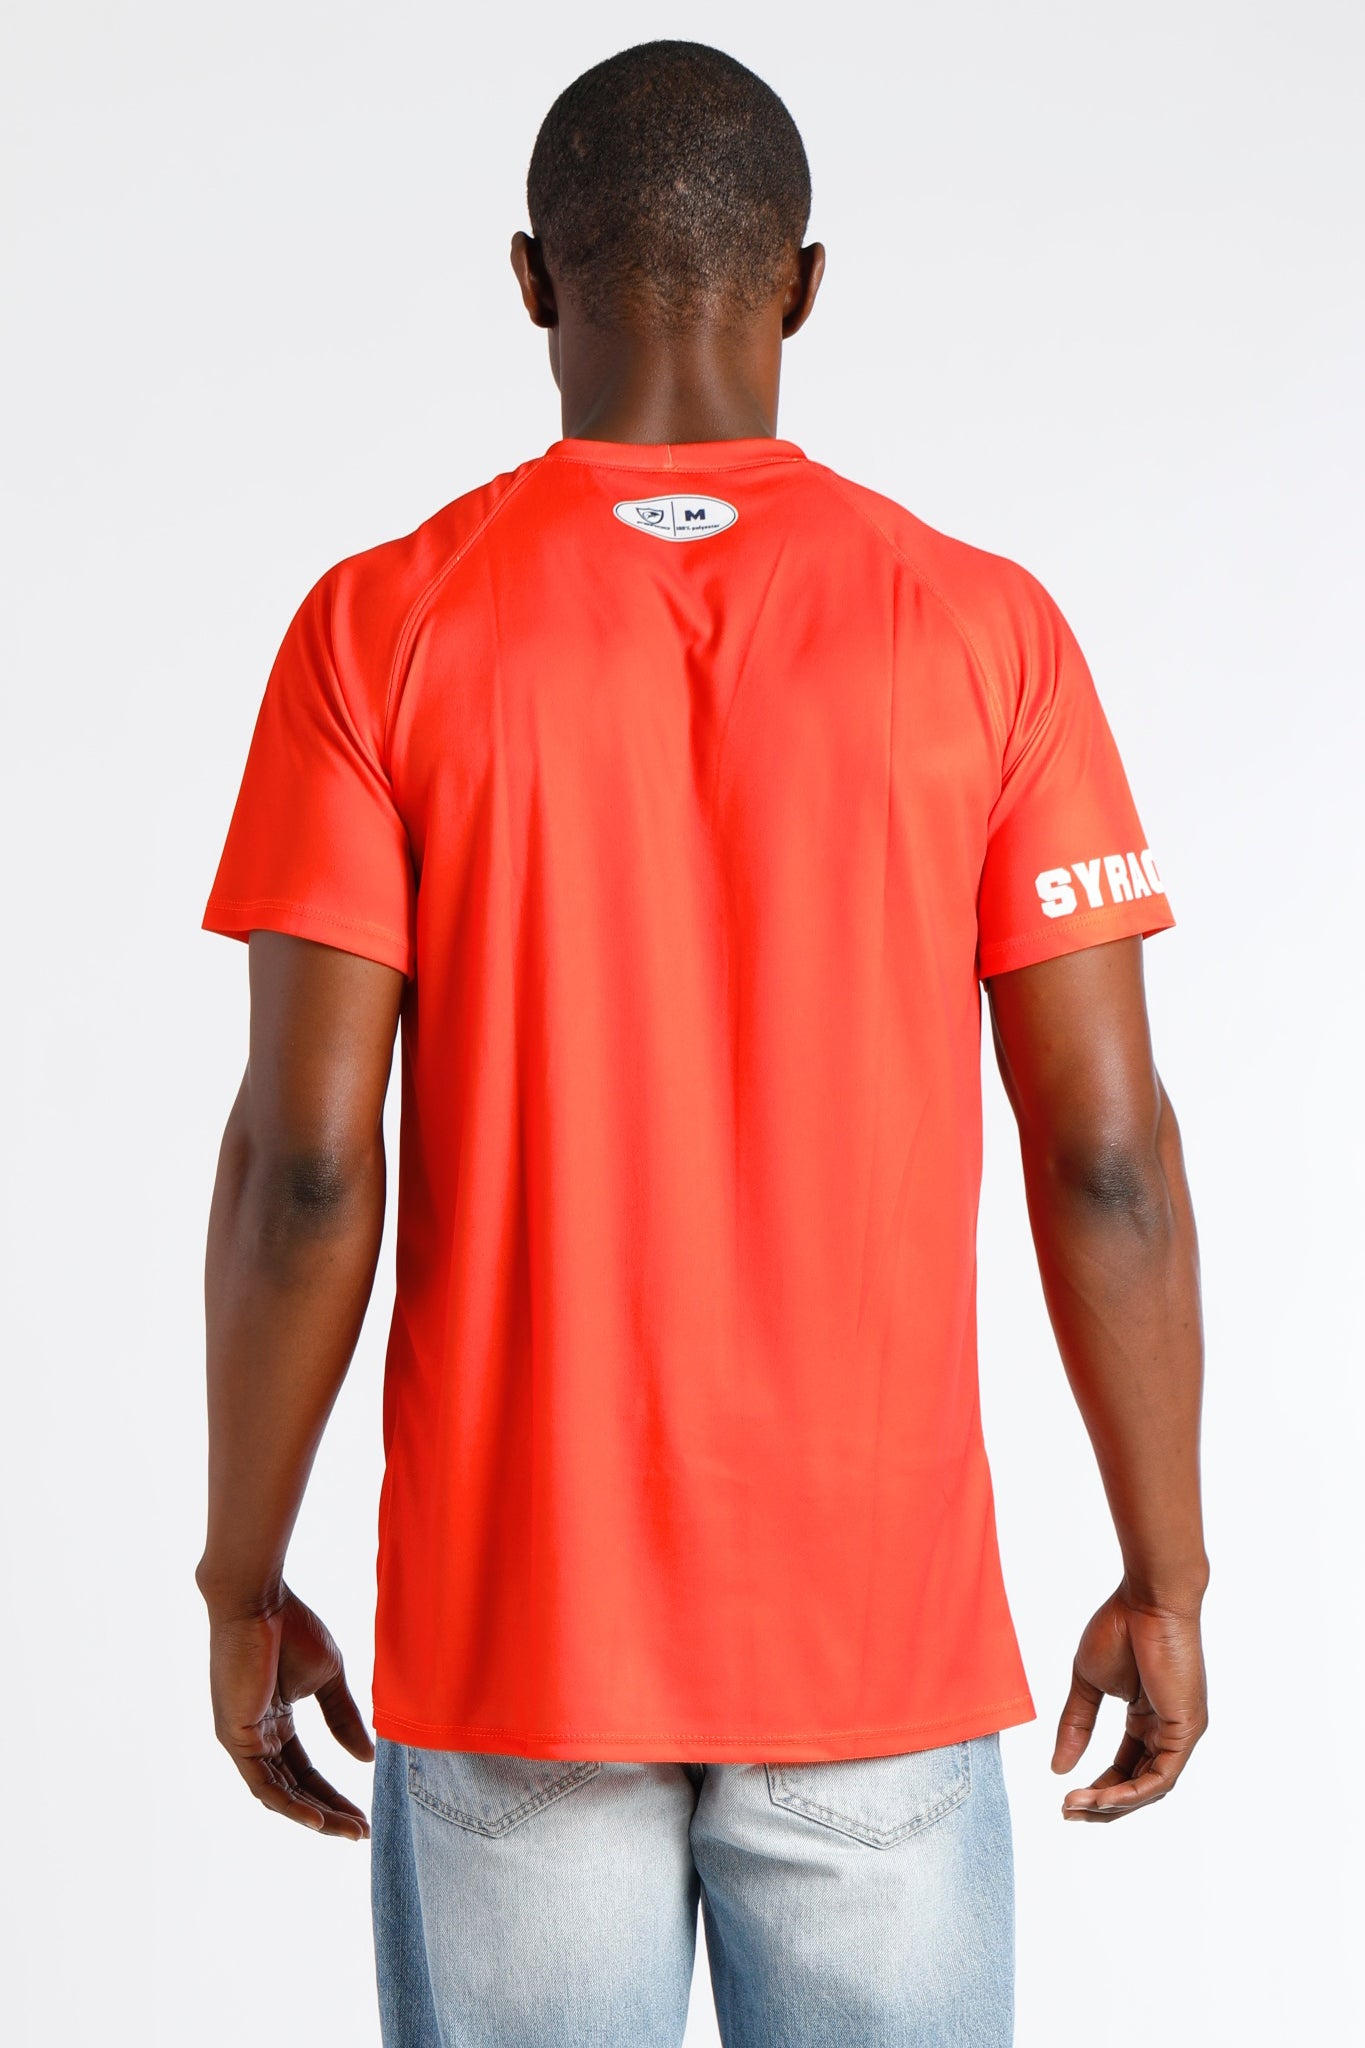 Men's Syracuse Sublimated Orange T-Shirt